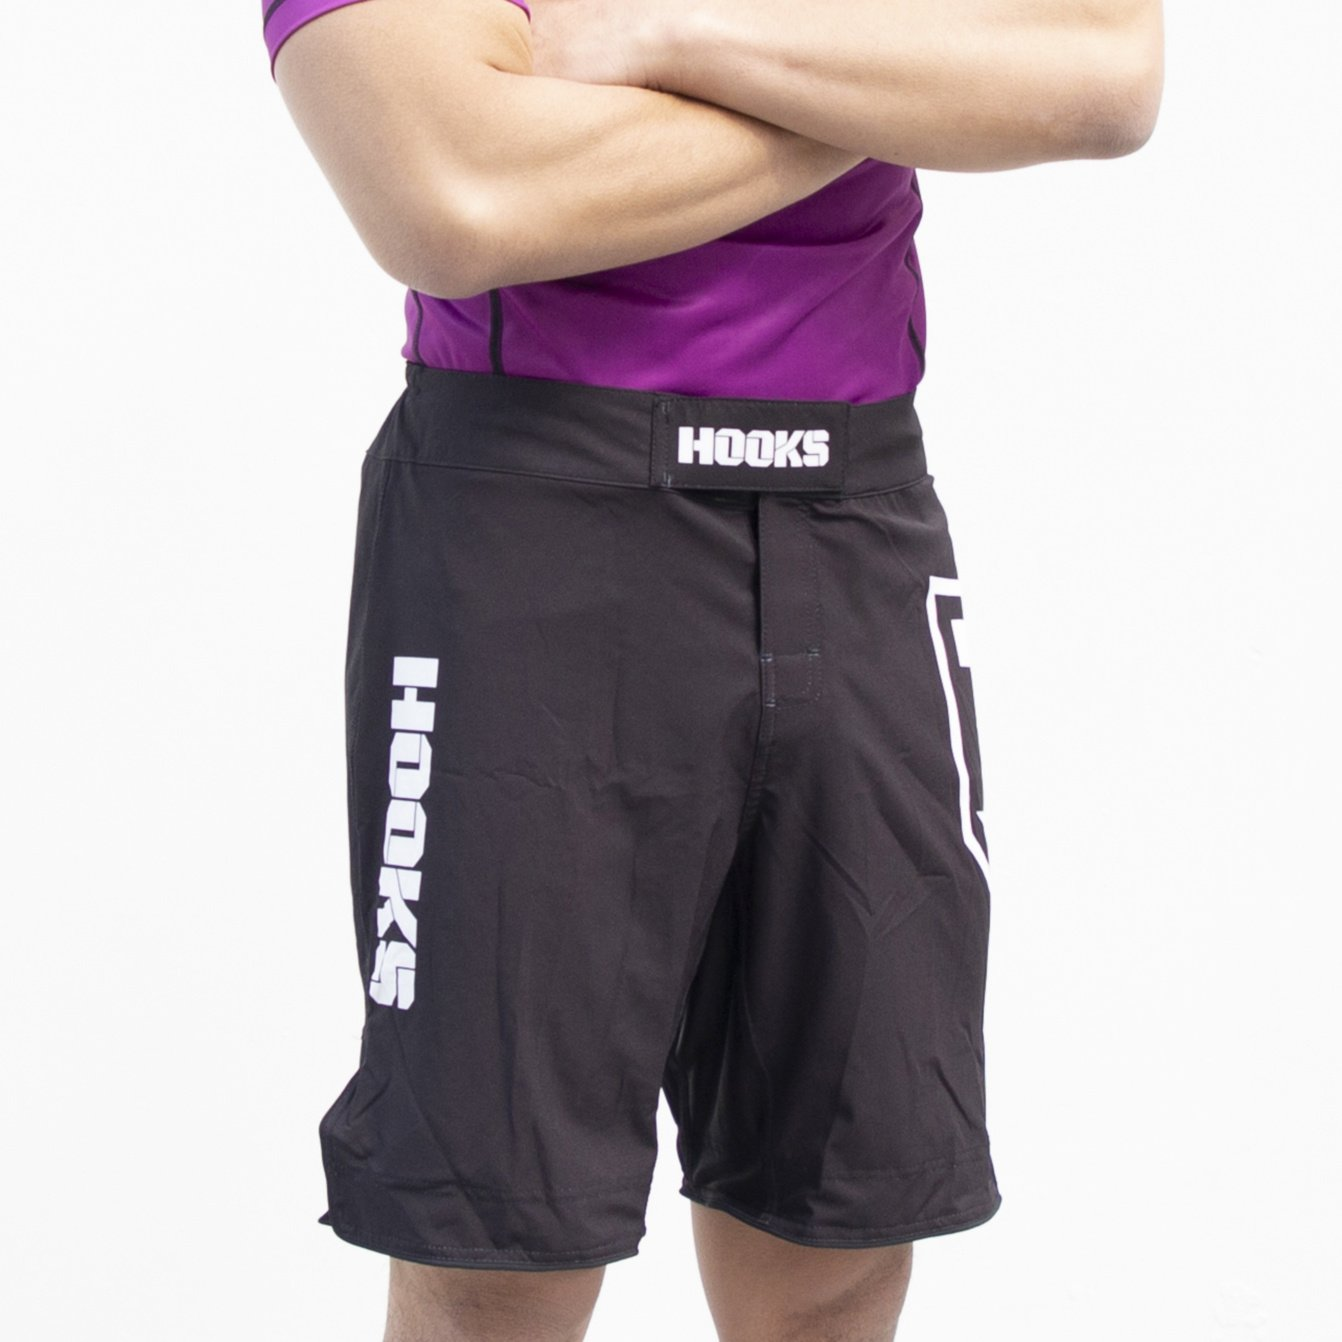 Hooks Pro Light Grappling Shorts